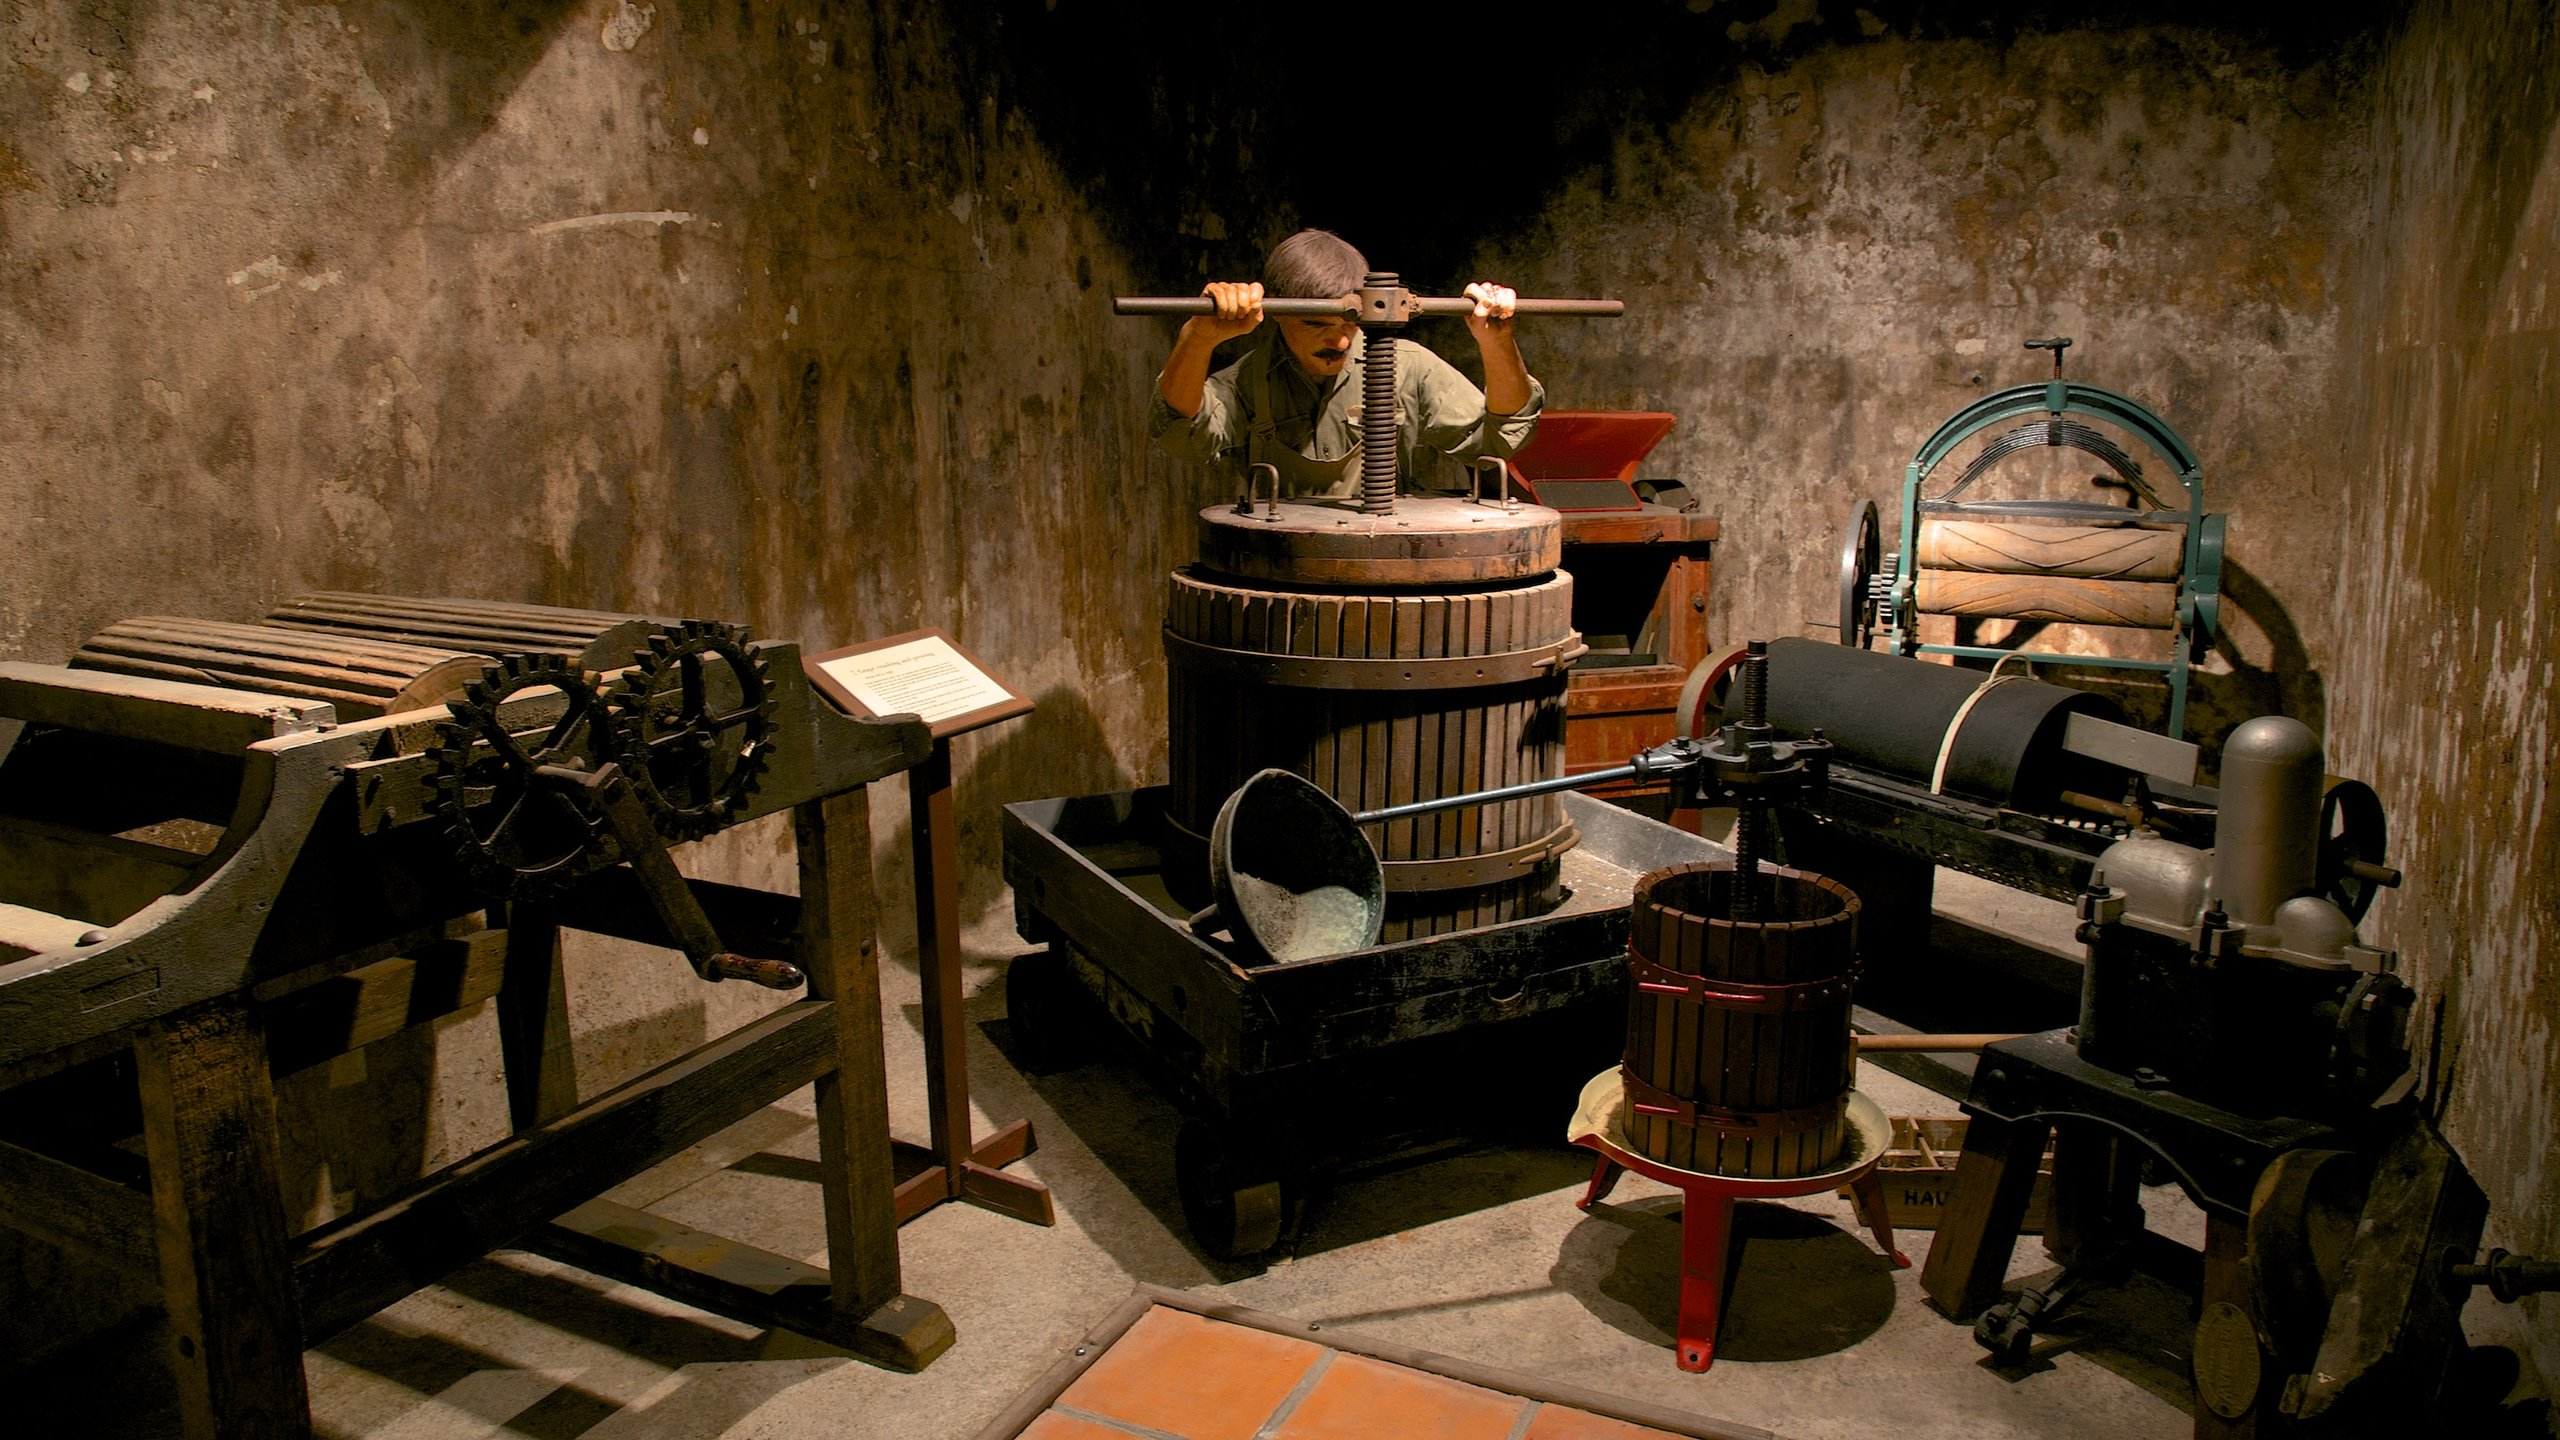 Delve into the history of winemaking and indulge in some fine local food and an assortment of delicious reds at this Hawke's Bay winery.